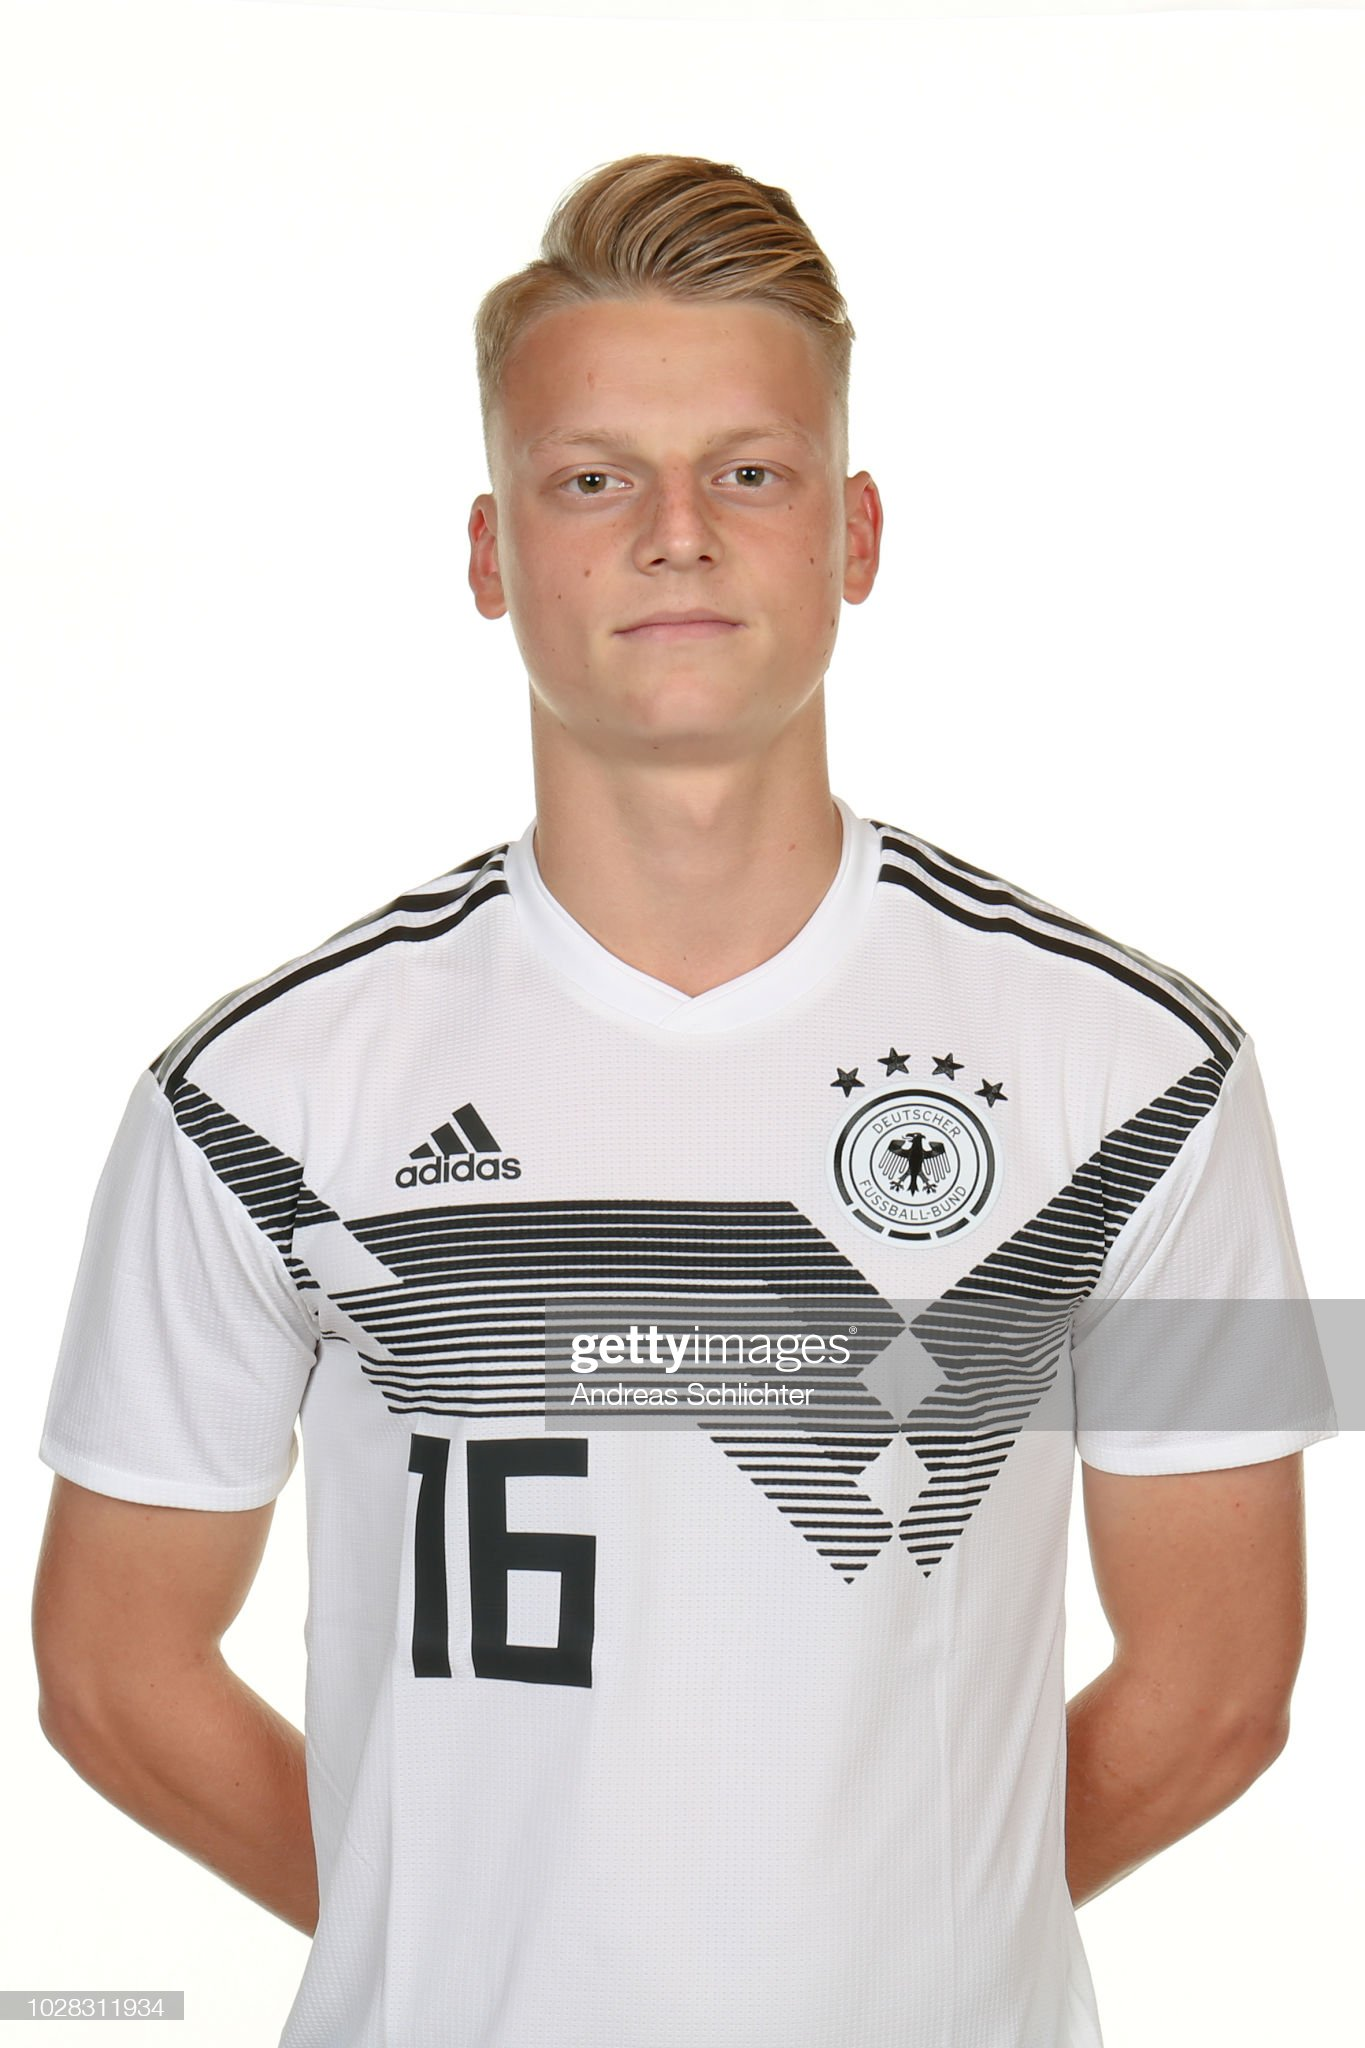 https://media.gettyimages.com/photos/jannis-lang-during-the-u17-germany-team-presentation-on-september-6-picture-id1028311934?s=2048x2048